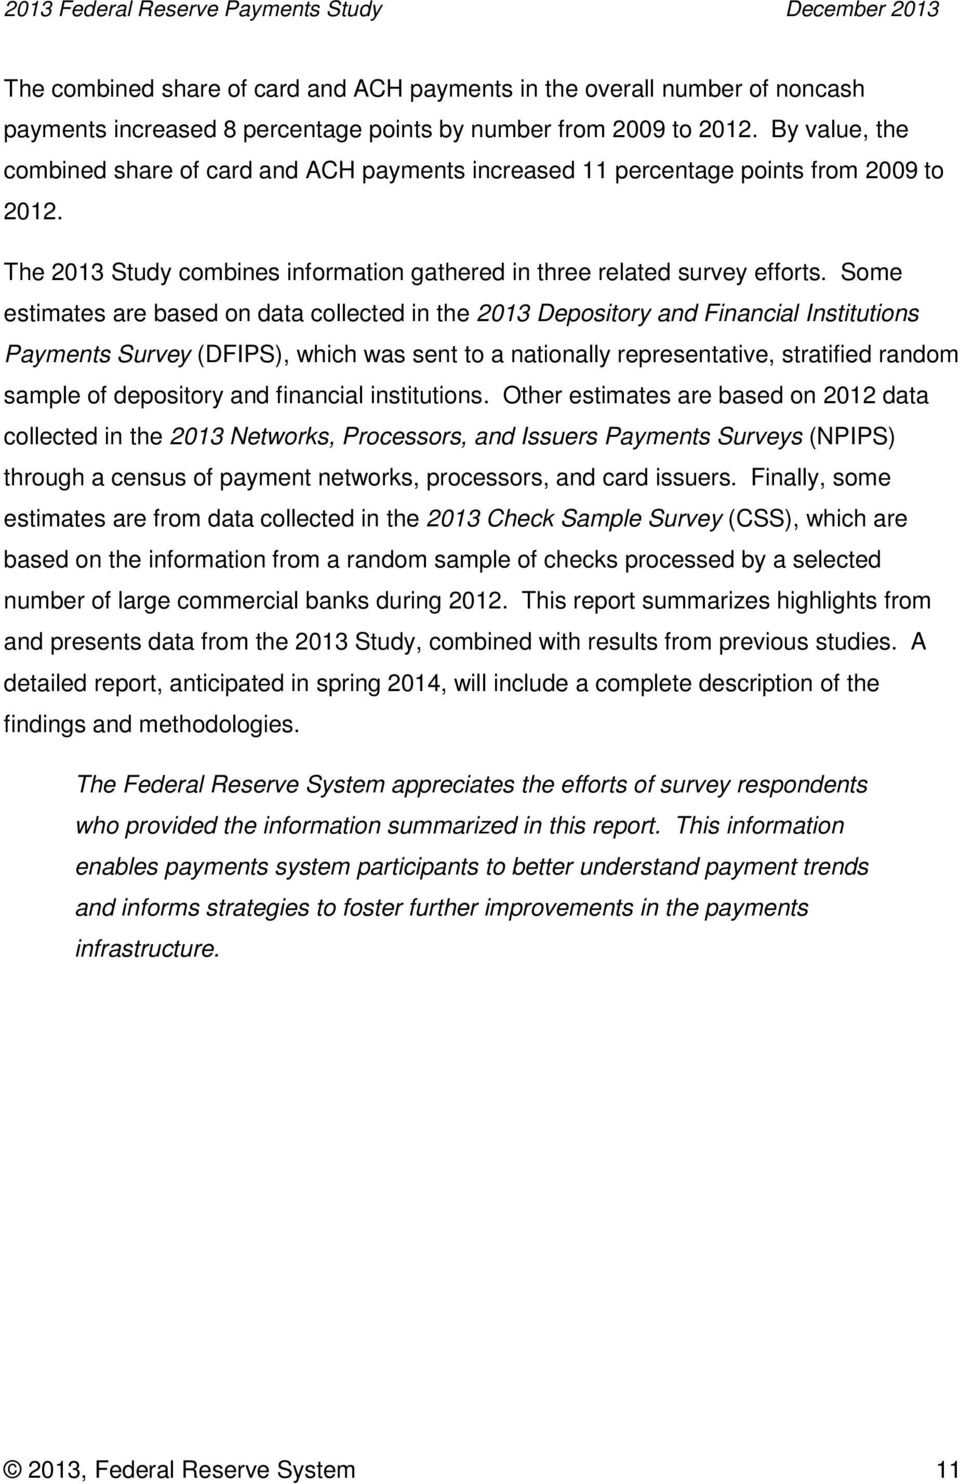 Some estimates are based on data collected in the 2013 Depository and Financial Institutions Payments Survey (DFIPS), which was sent to a nationally representative, stratified random sample of